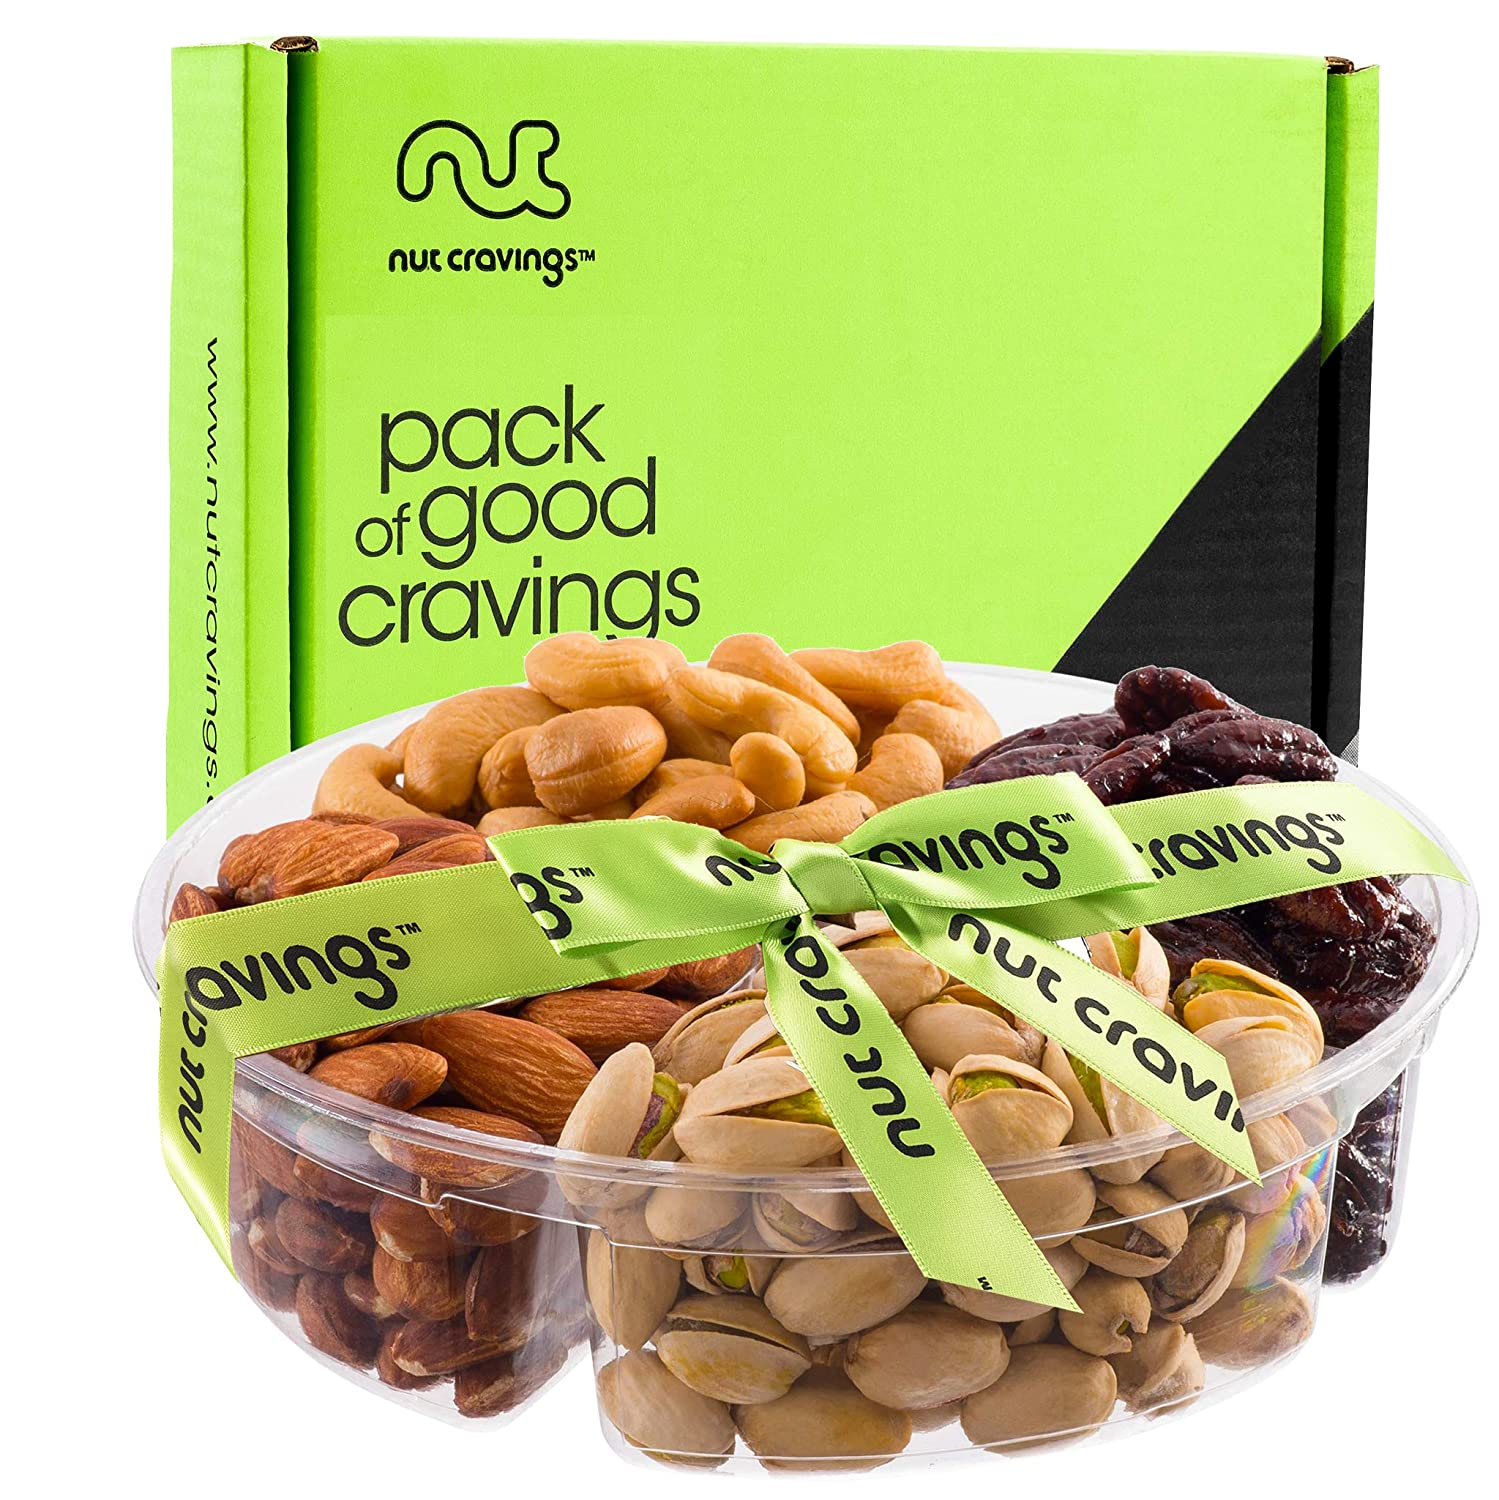 Holiday Nuts Gift Basket | Medium 4-Sectional Delicious Variety Mixed Nuts Prime Gift | Healthy Fresh Gift Idea For Christmas, Thanksgiving, Mothers & Fathers Day, And Birthday